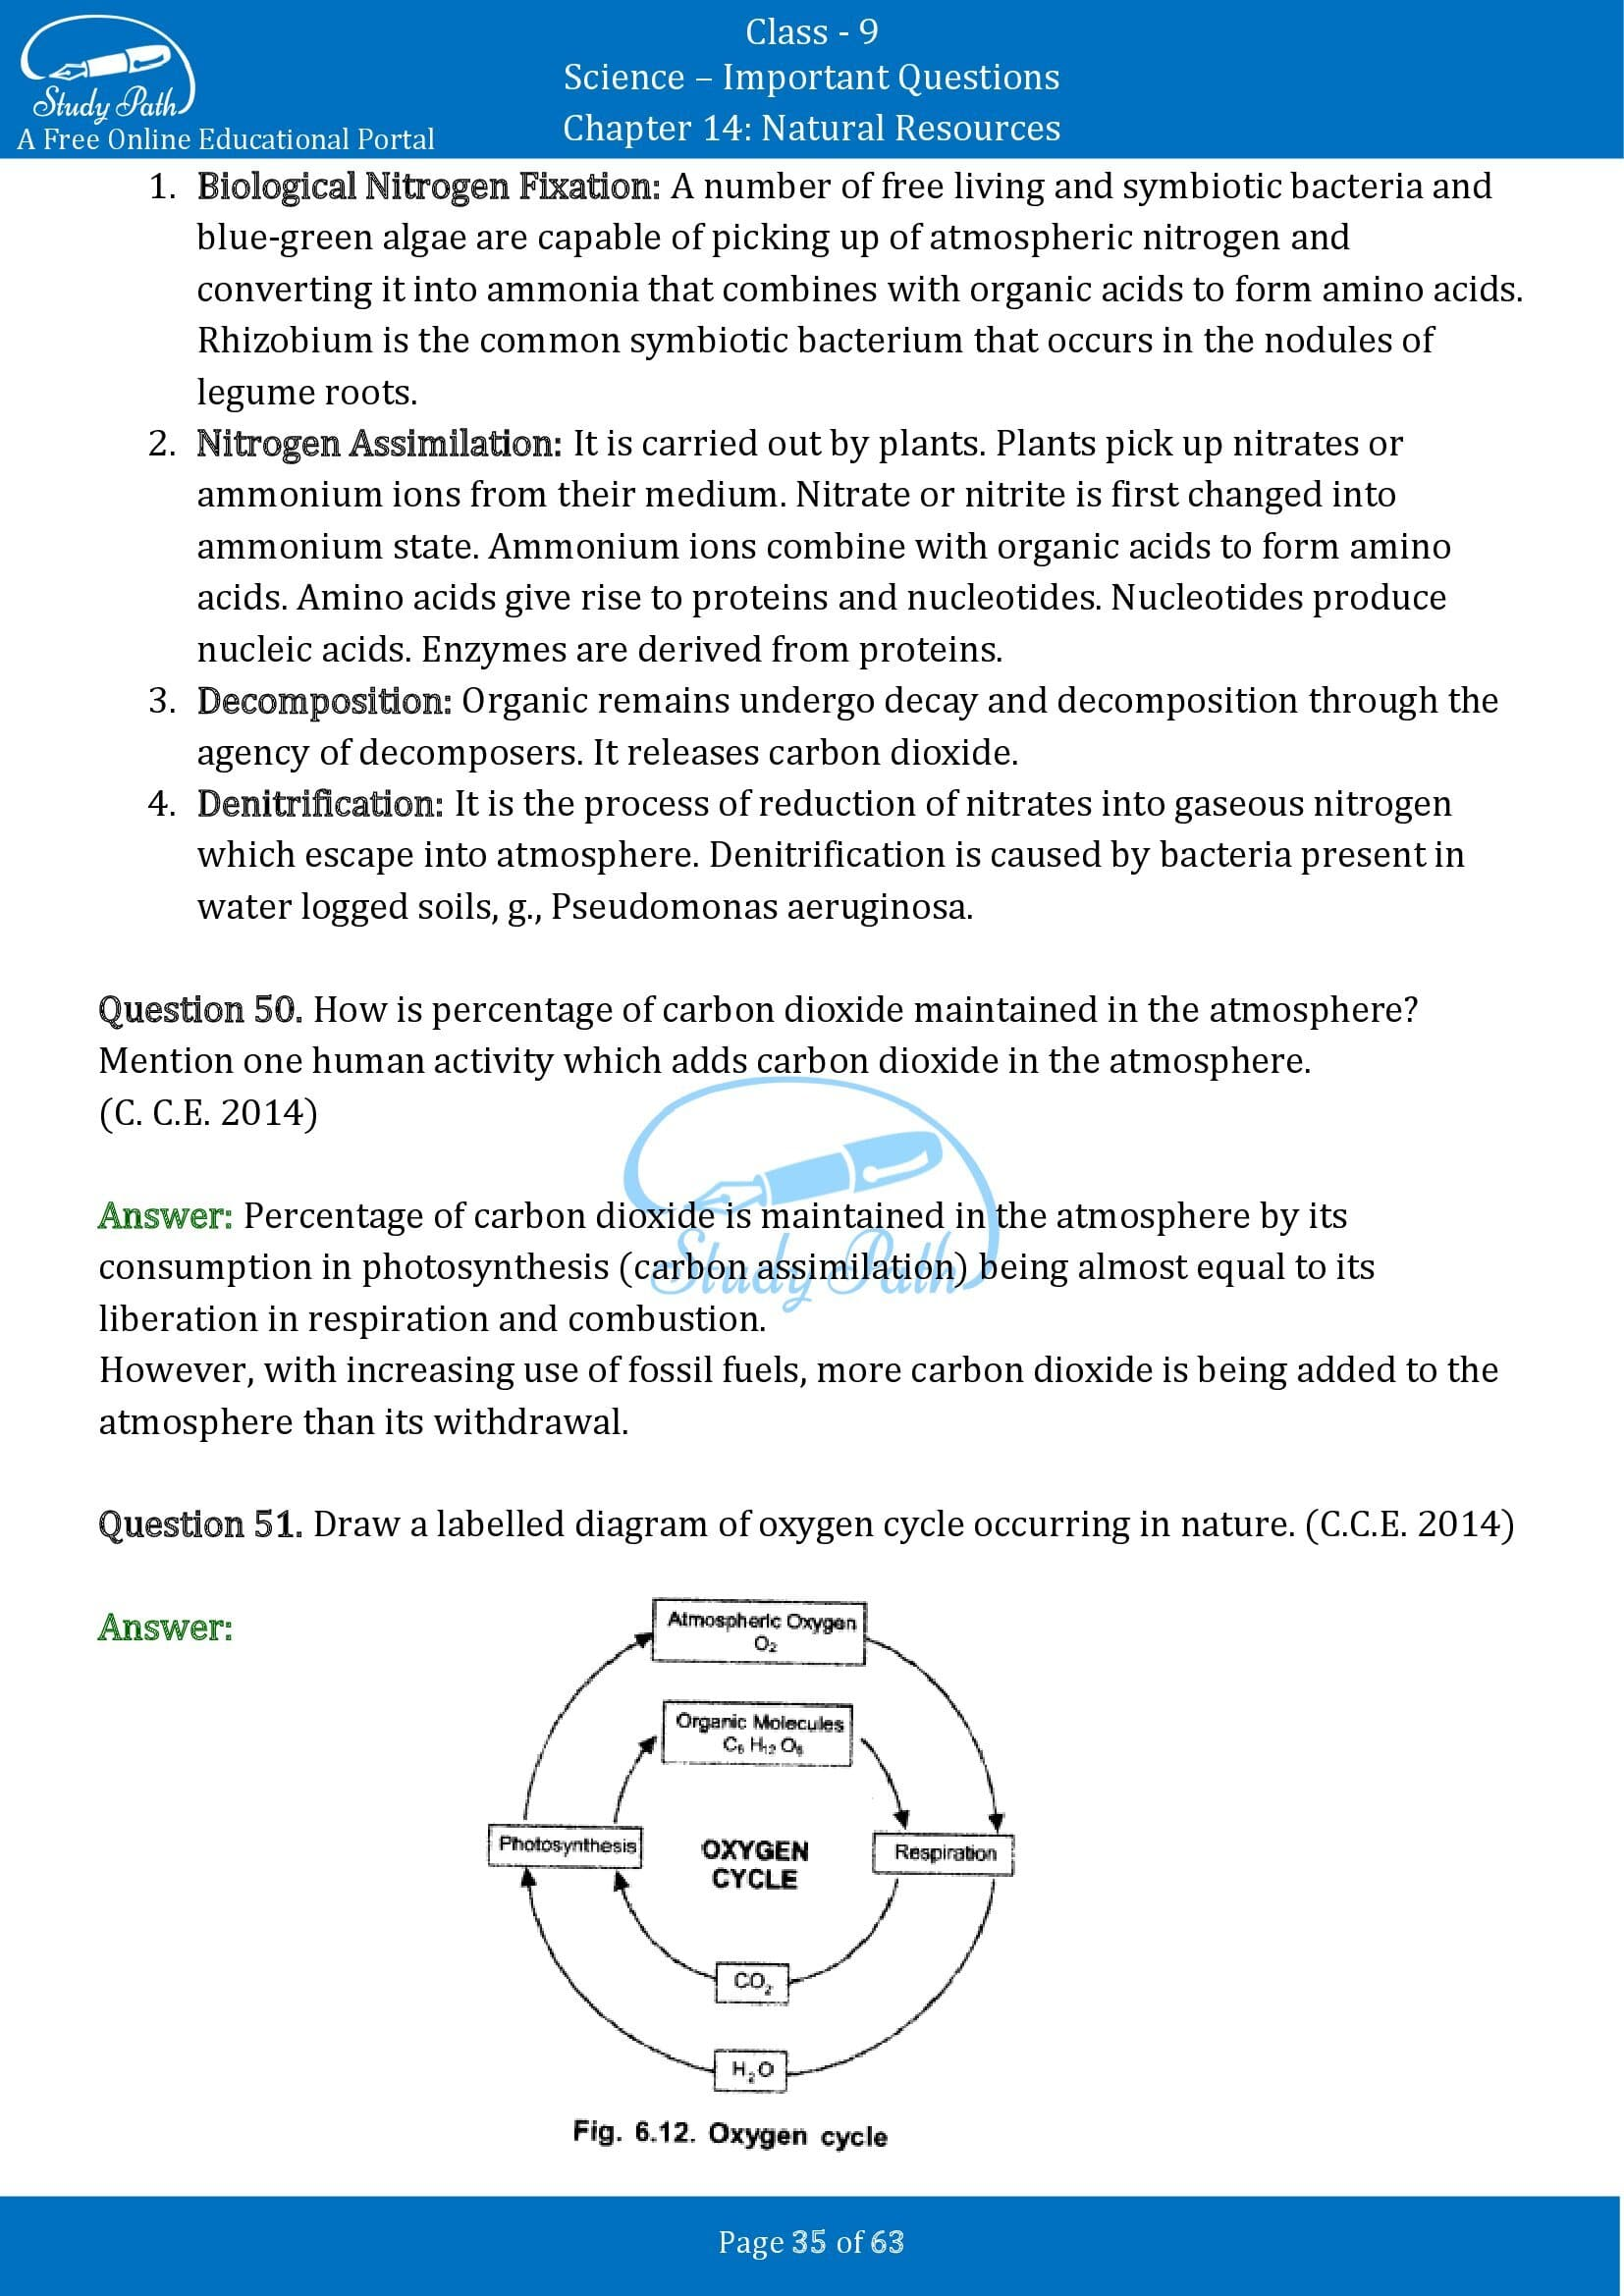 Important Questions for Class 9 Science Chapter 14 Natural Resources 00035